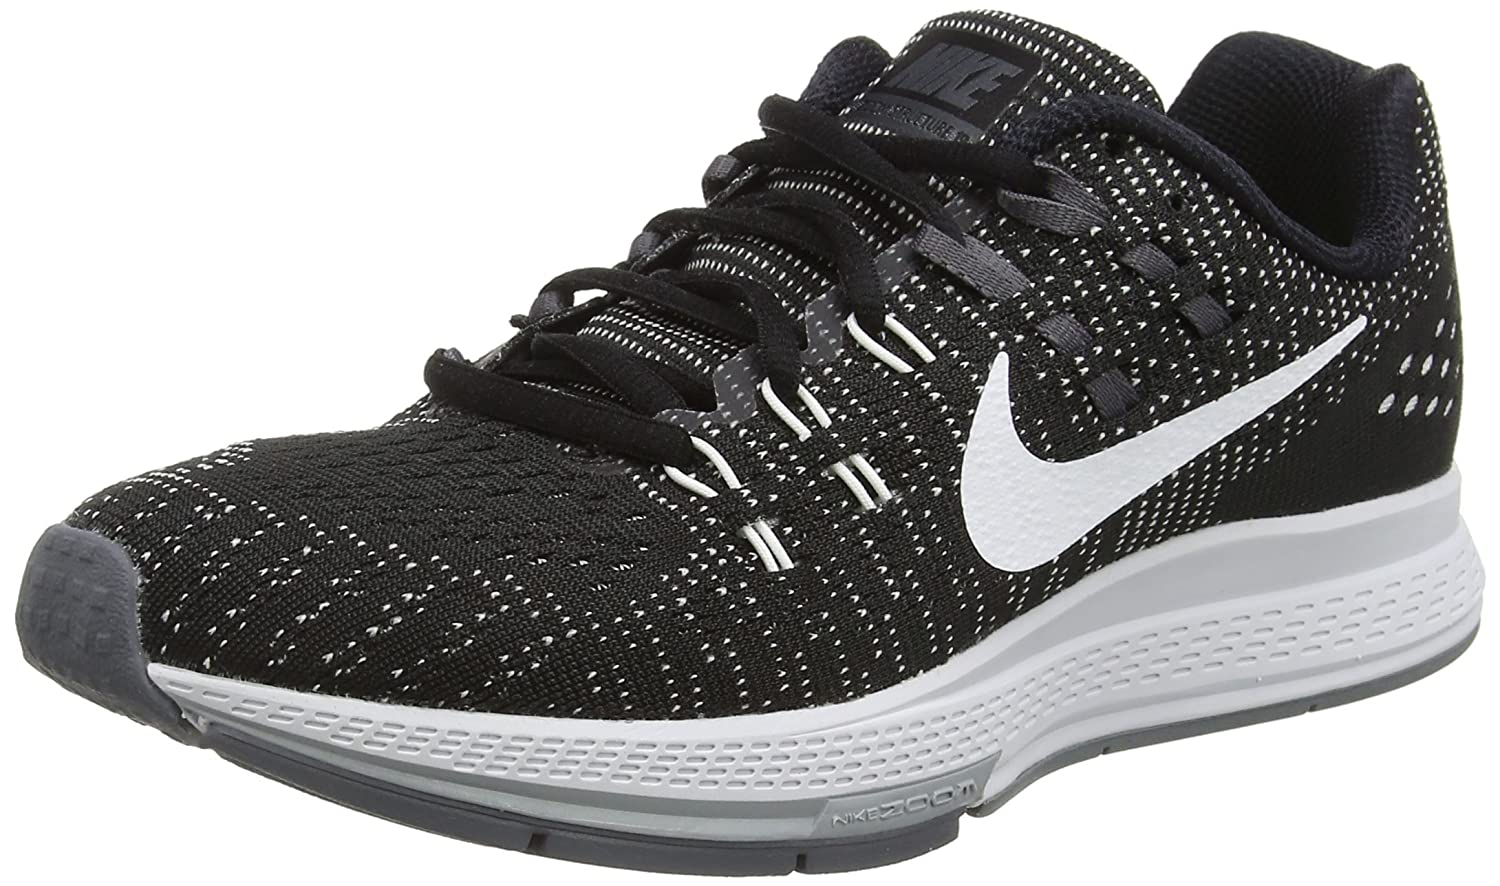 low priced 63d87 40245 Amazon.com   NIKE Women s WMNS Air Zoom Structure 19, Black White-Dark Grey-Cool  Grey, 12 M US   Athletic